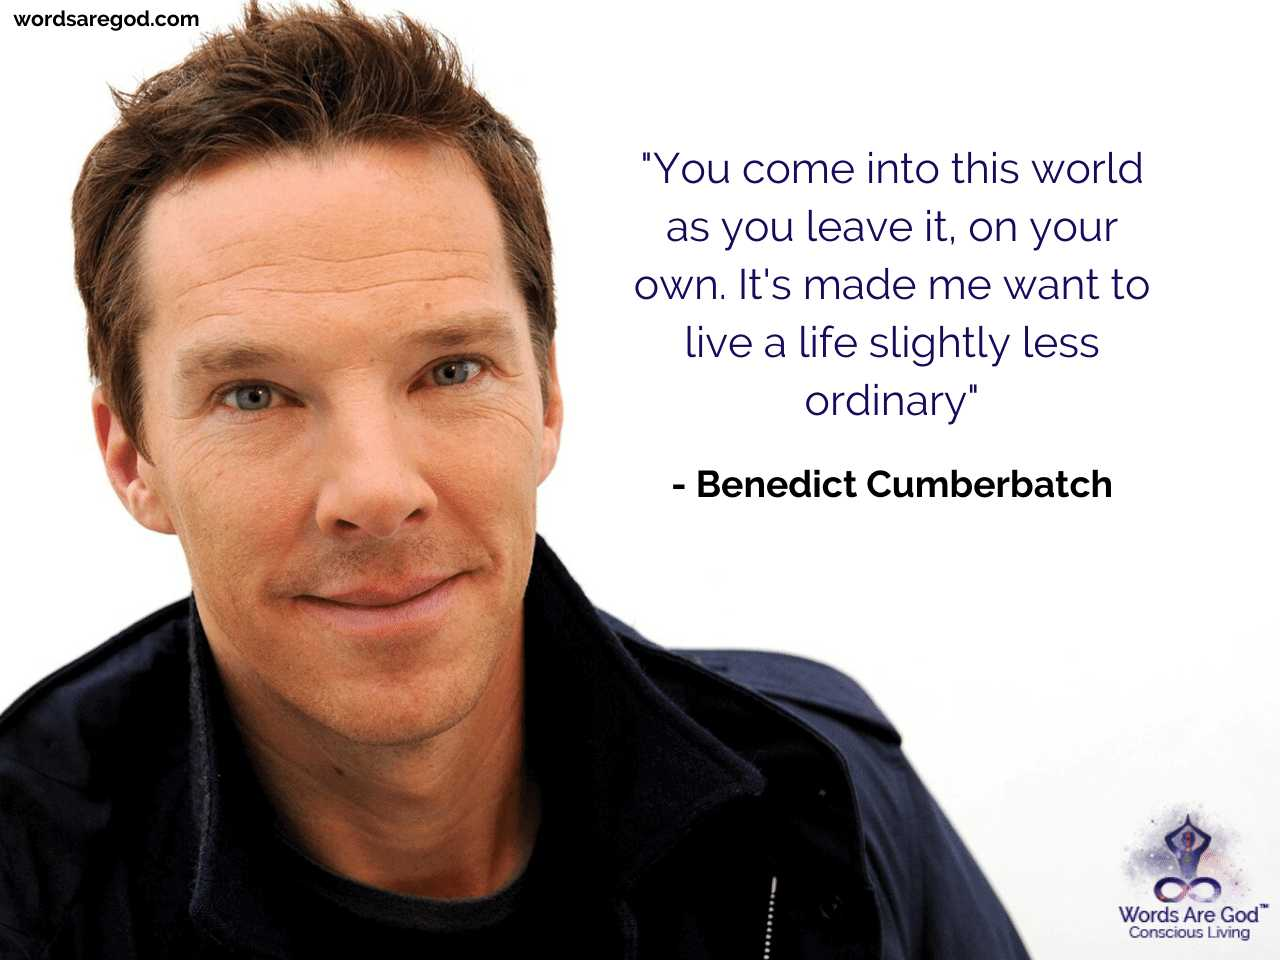 Benedict Cumberbatch Life Quote